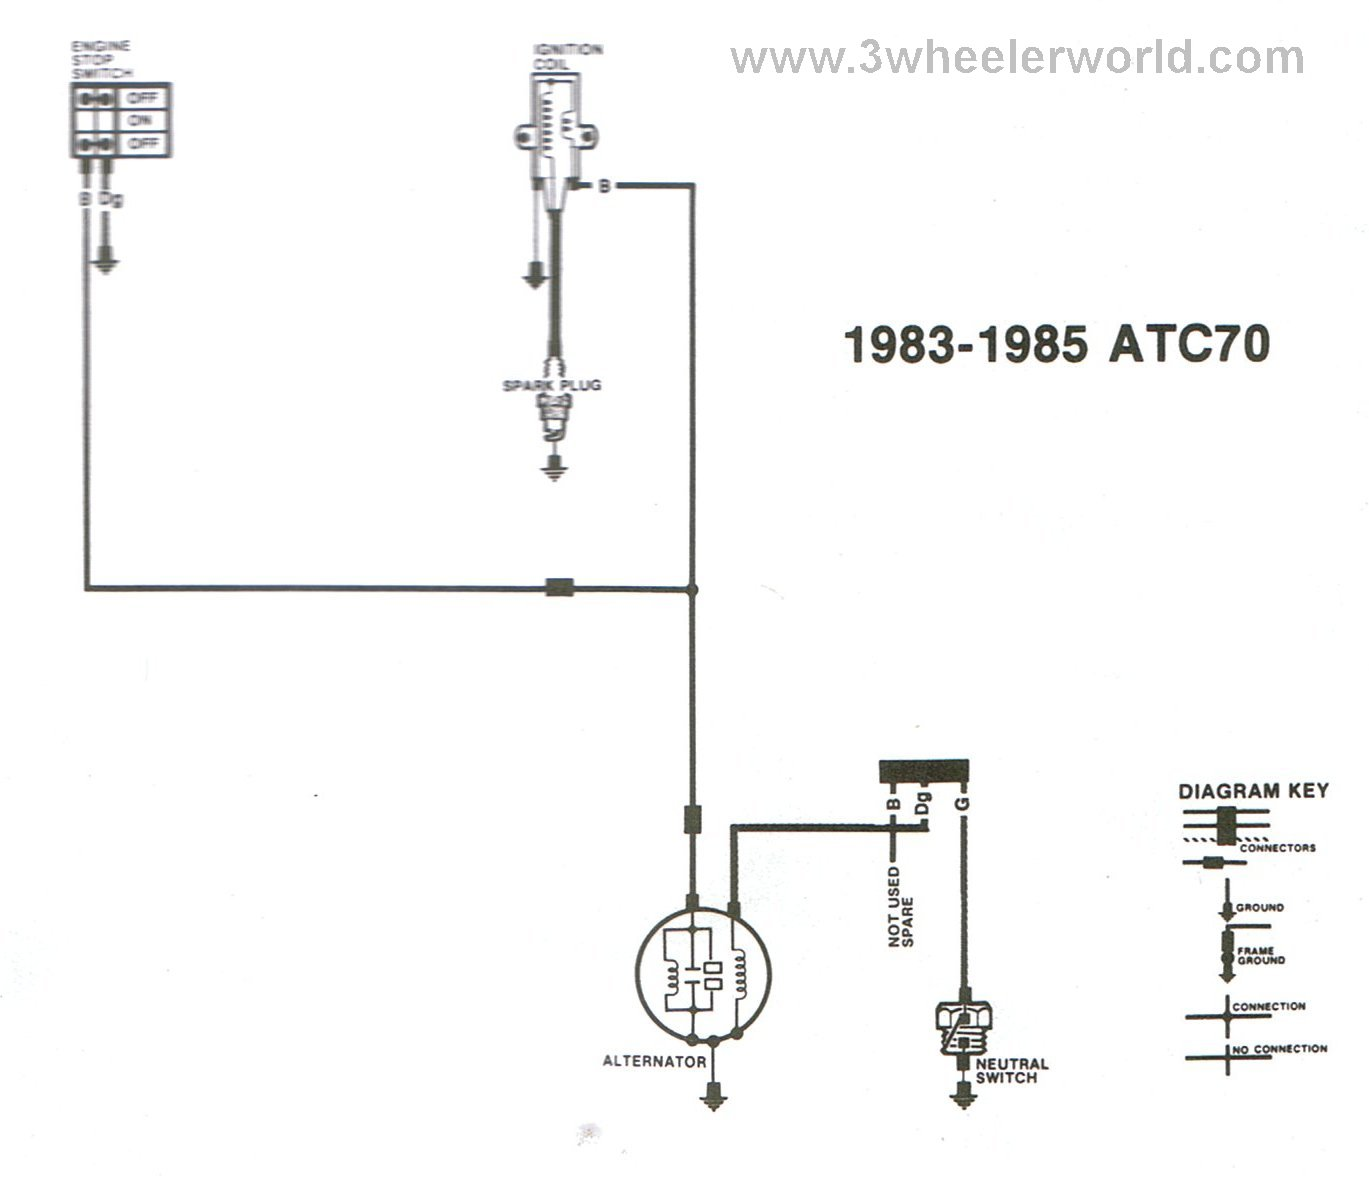 1987 Honda 300 Fourtrax Wiring Diagrams List Of Schematic Circuit 87 Klf 3 Wheeler World Tech Help Rh 3wheelerworld Com